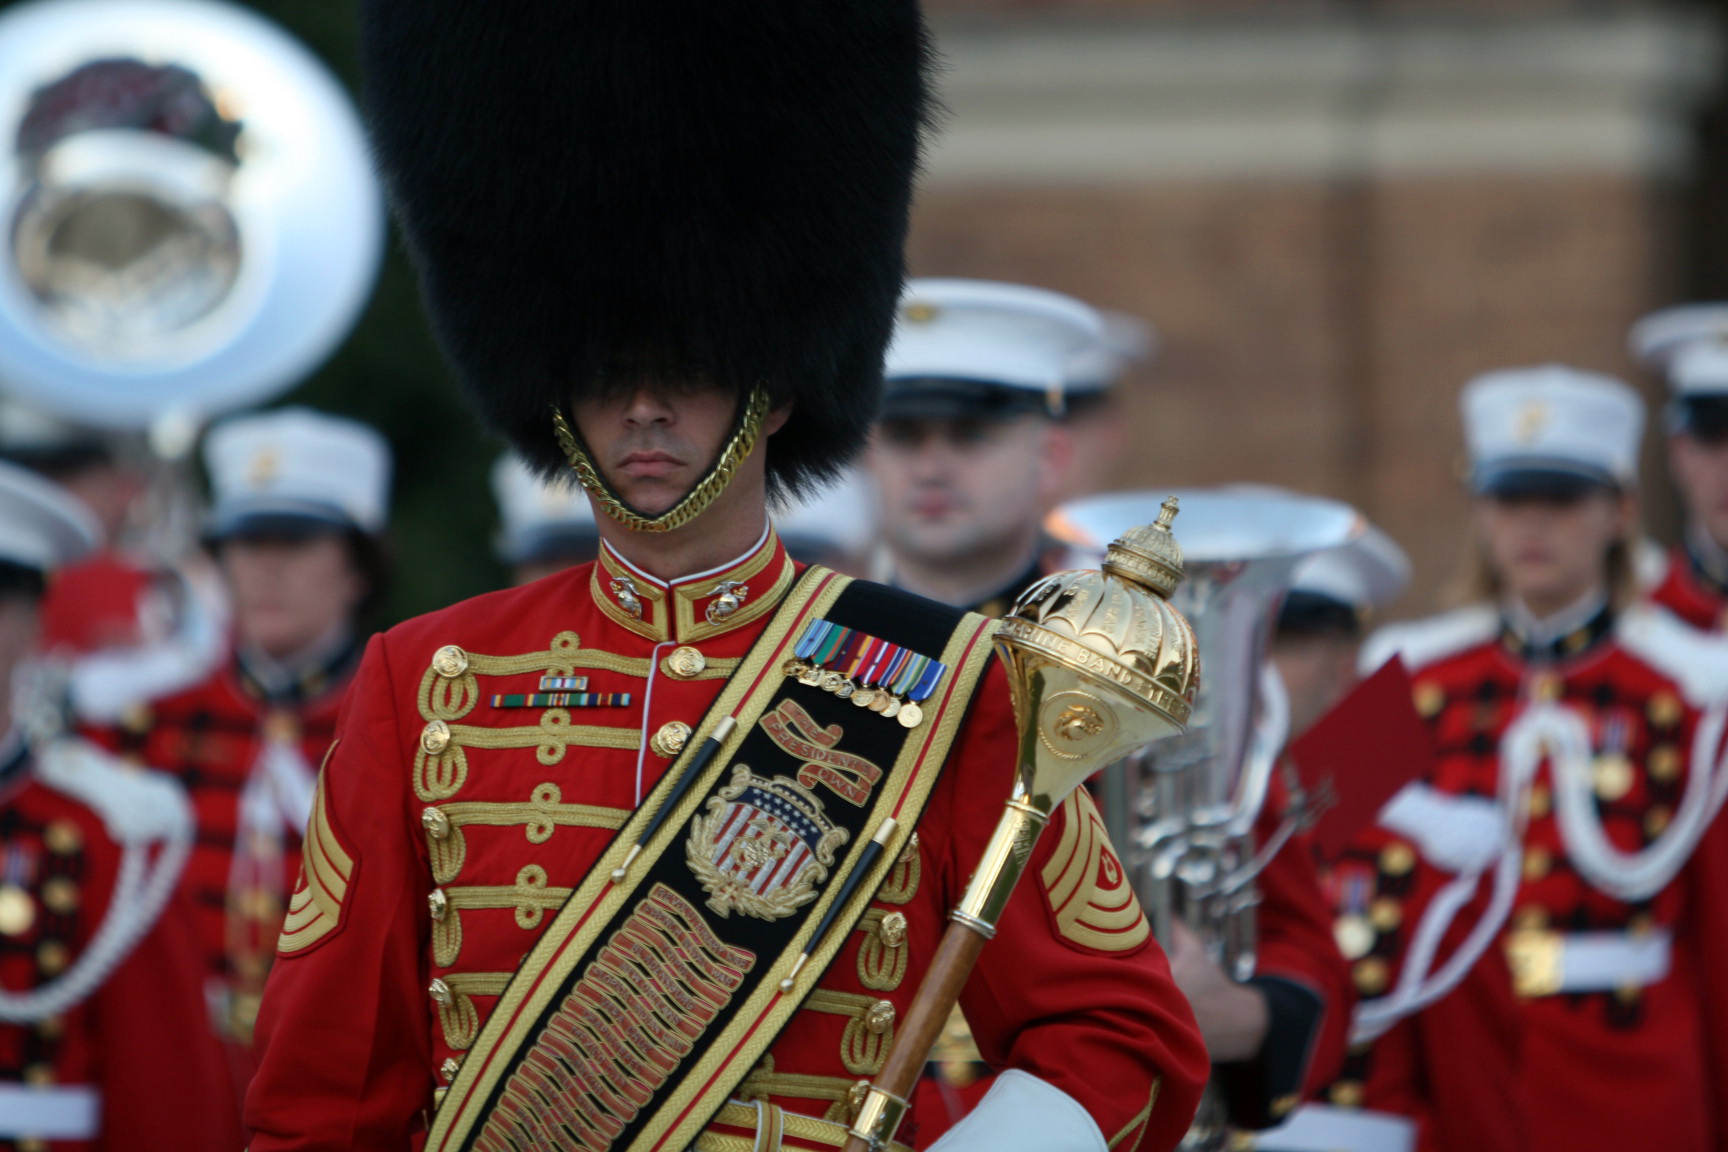 United States Marine Band - Wikipedia